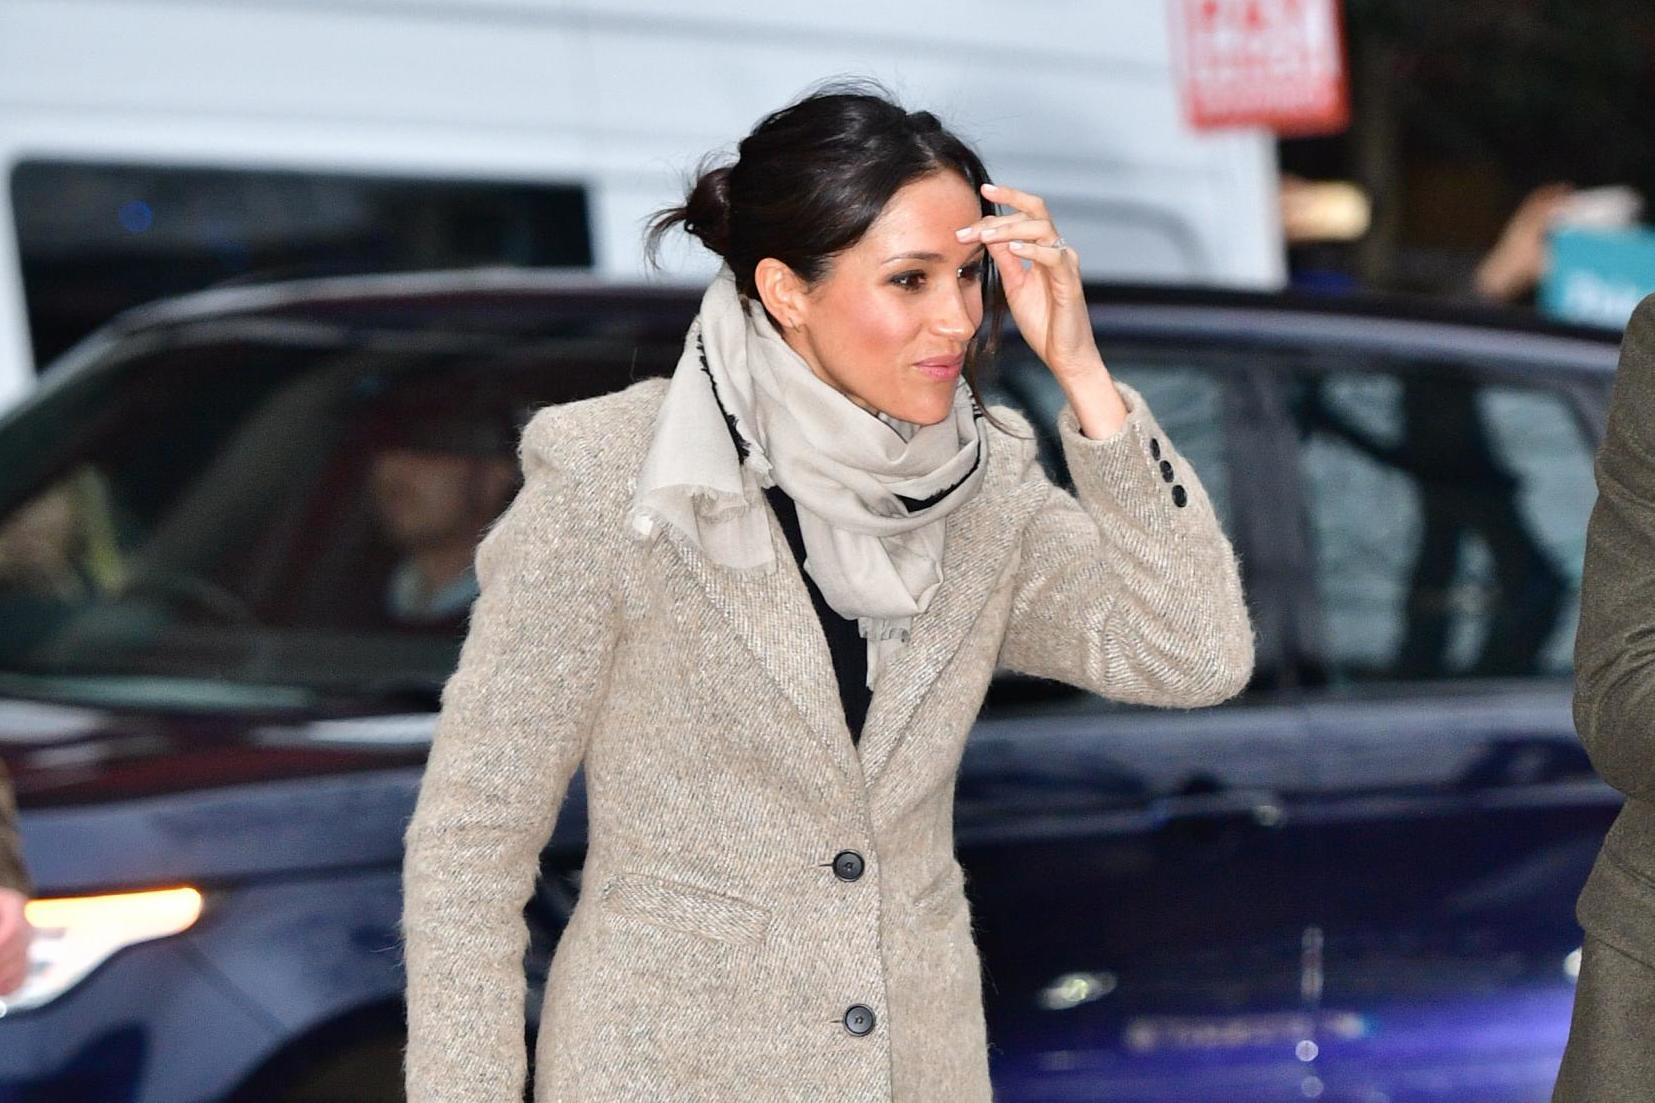 Fashion Hair Style: Meghan Markle's Body Language Suggests Lack Of Confidence